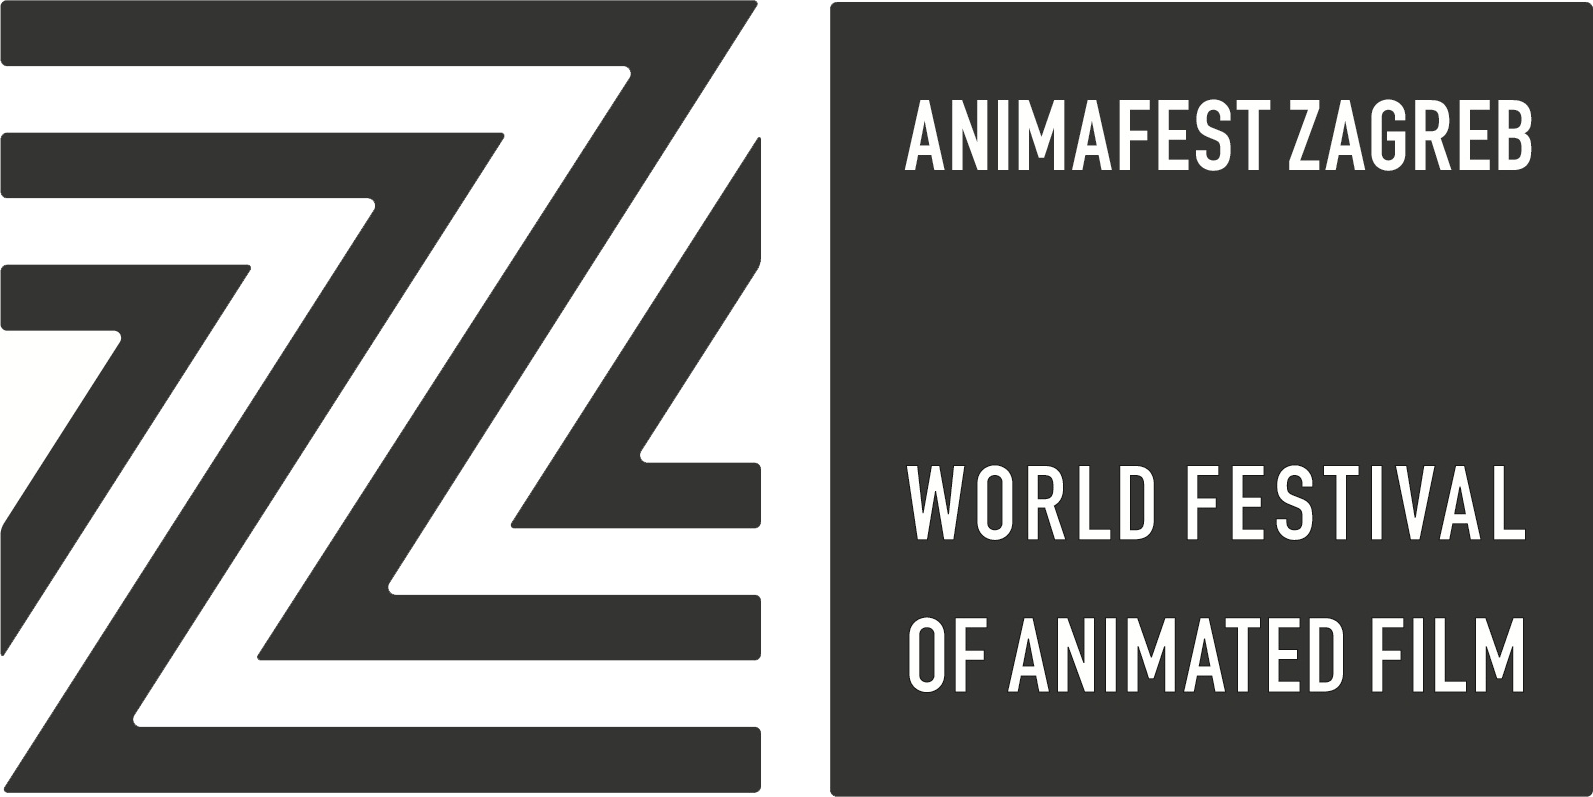 Animafest Zagreb World Festival of Animated Film